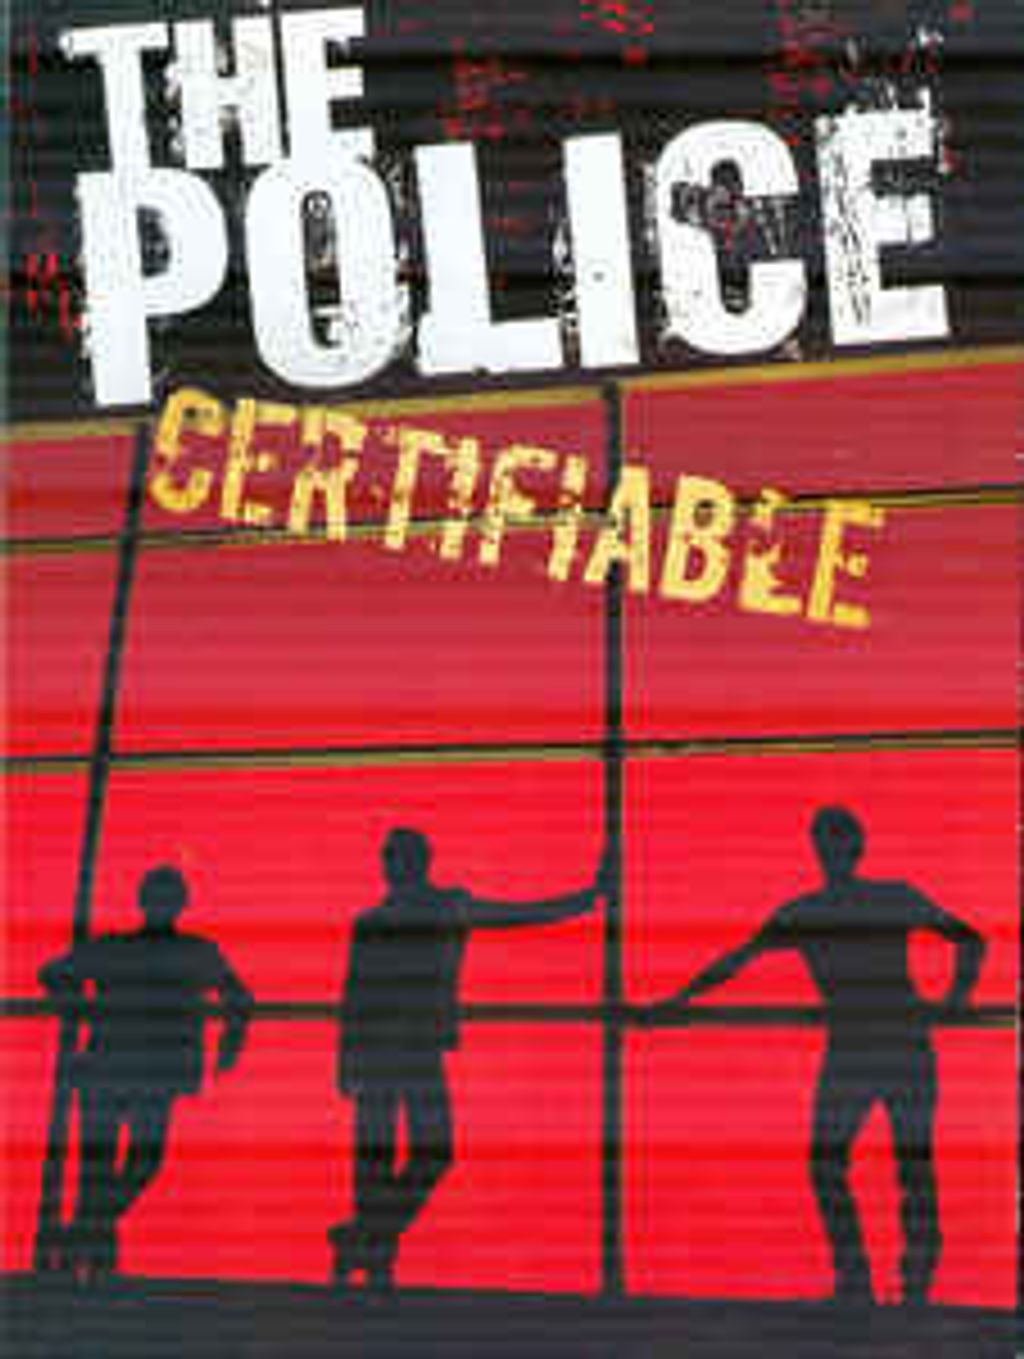 THE POLICE Certifiable (Live In Buenos Aires) 2CD + 2DVD.jpg